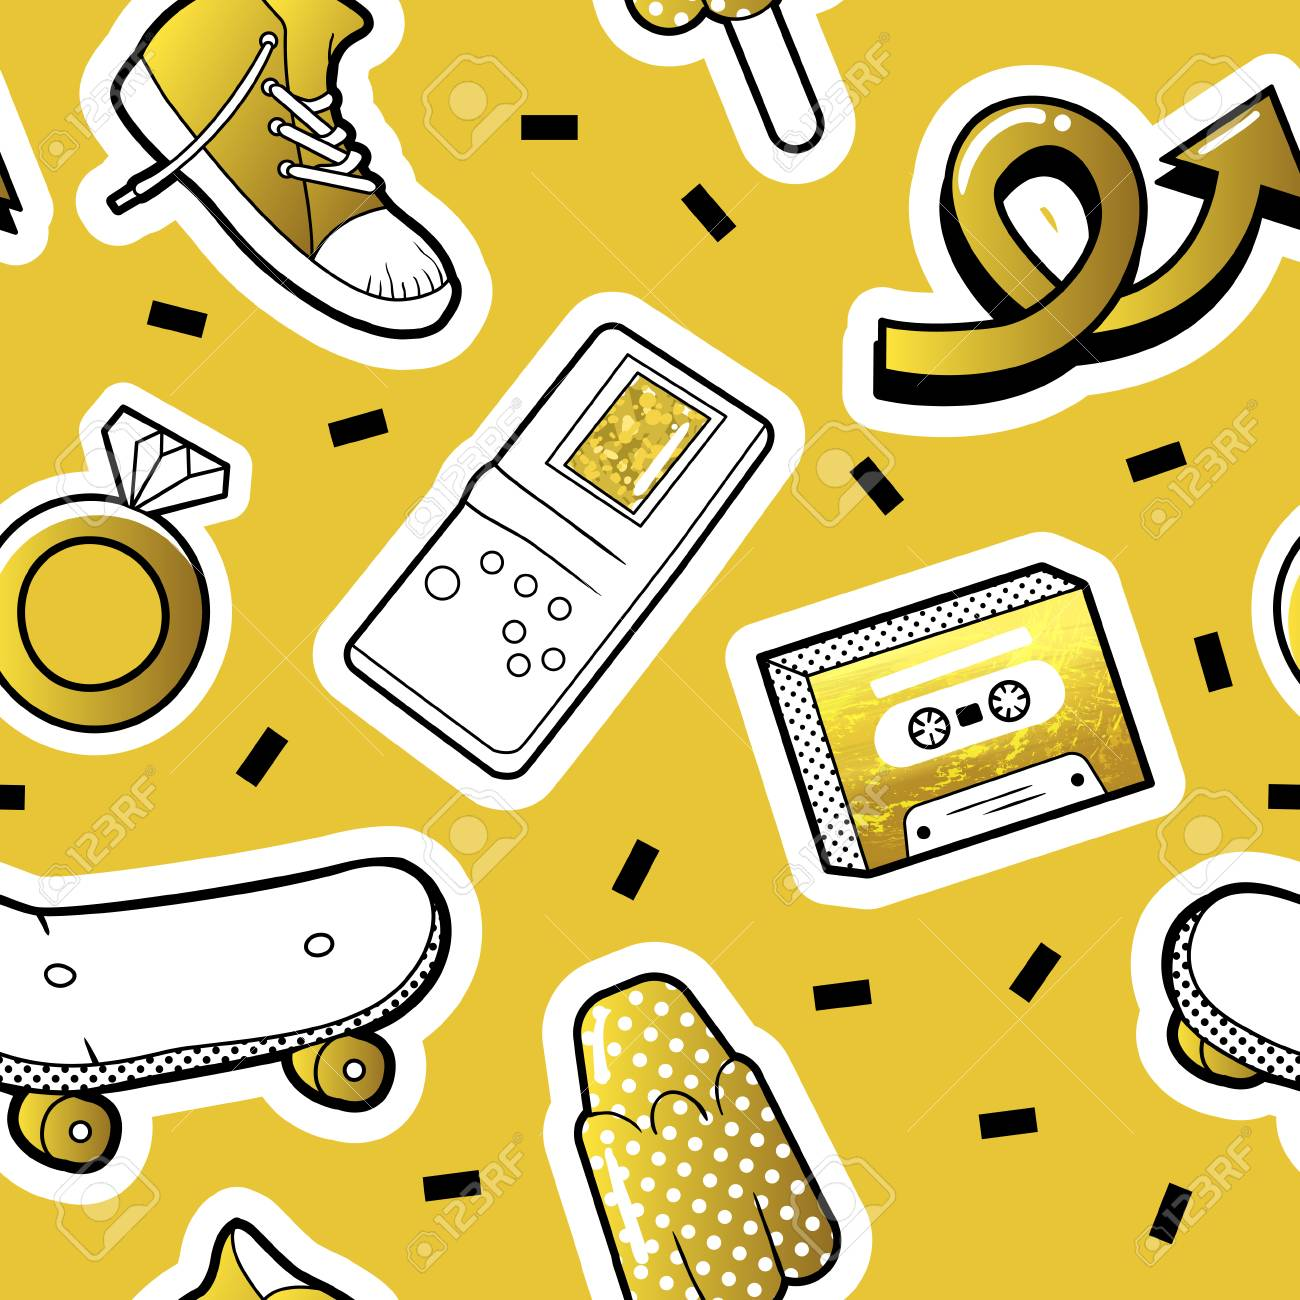 Fashionable Seamless Pattern in Pop Art Style with Golden Dotted